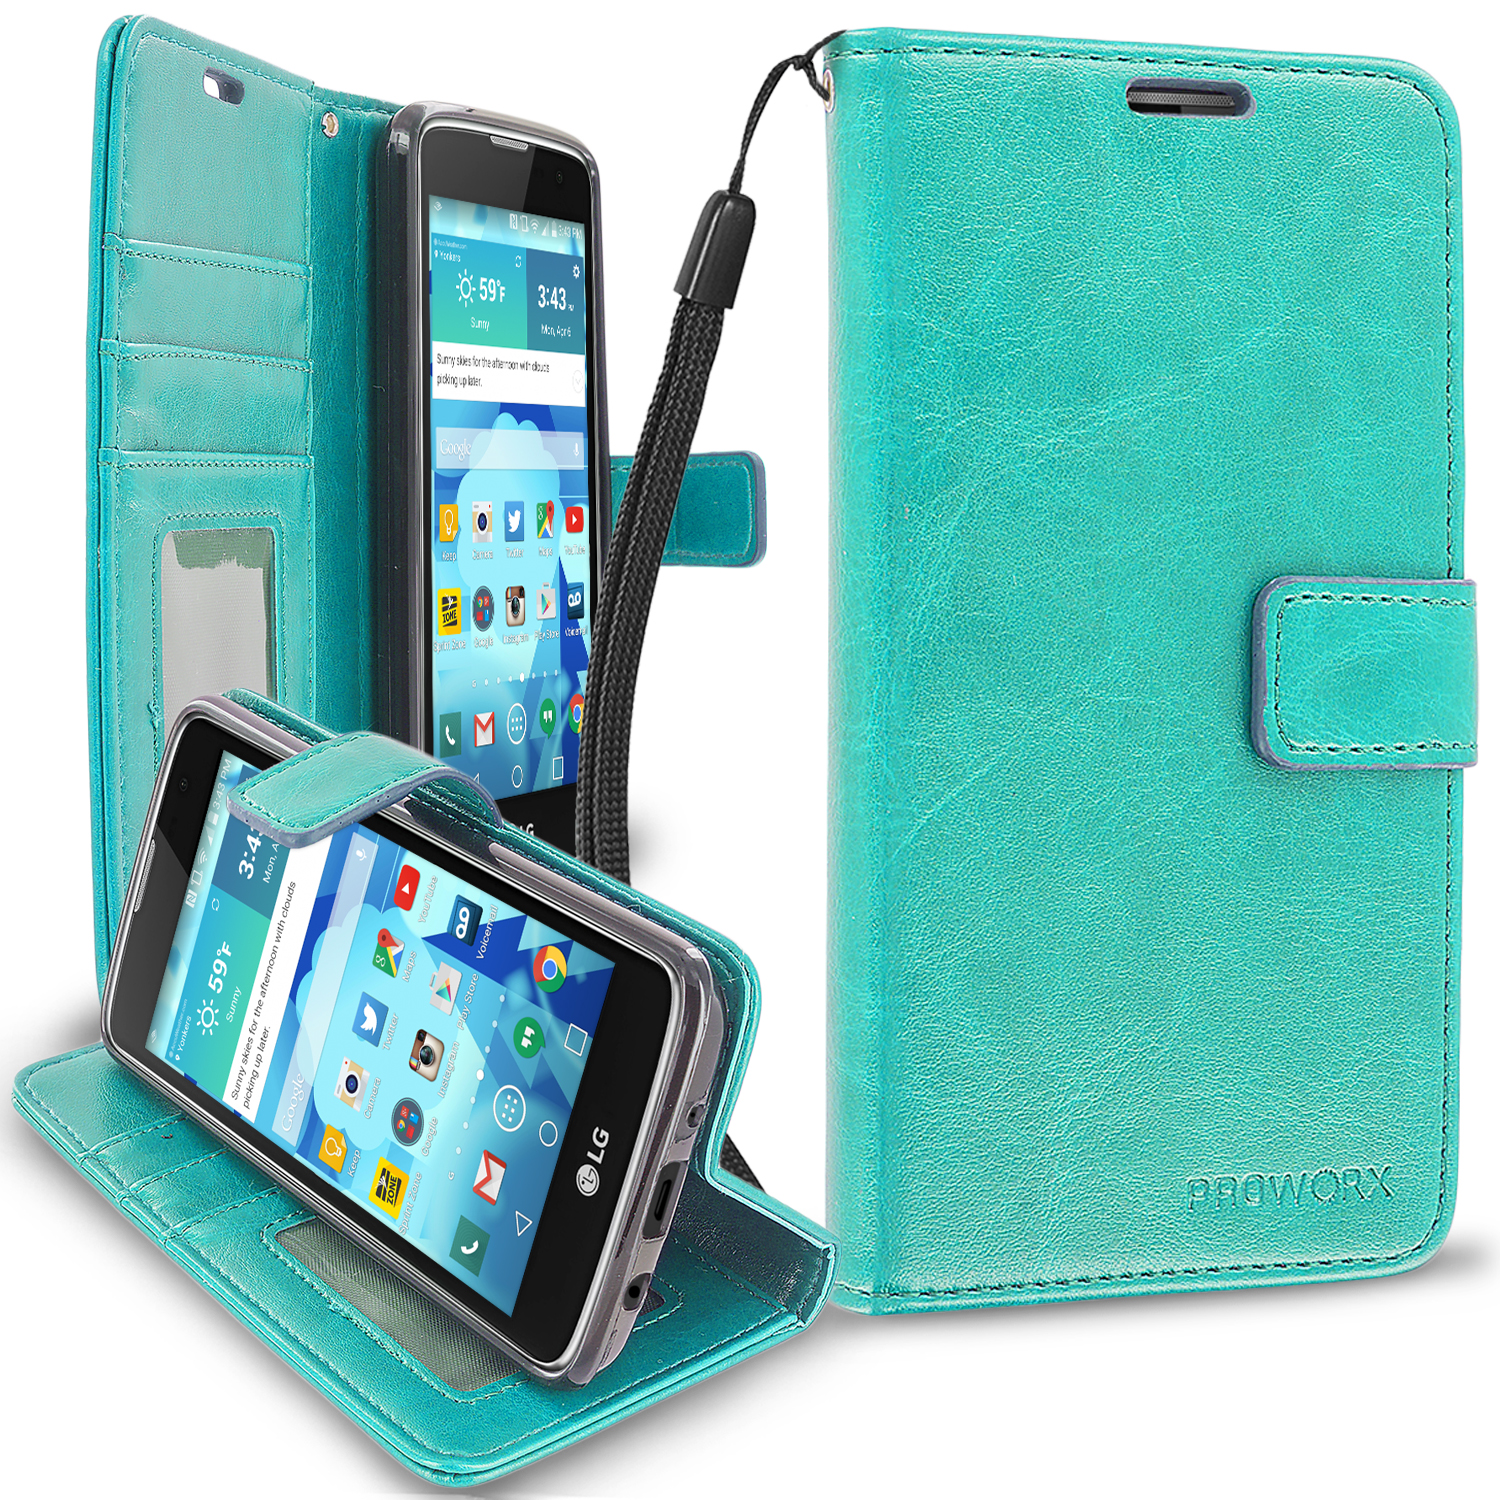 LG Tribute 5 K7 Mint Green ProWorx Wallet Case Luxury PU Leather Case Cover With Card Slots & Stand